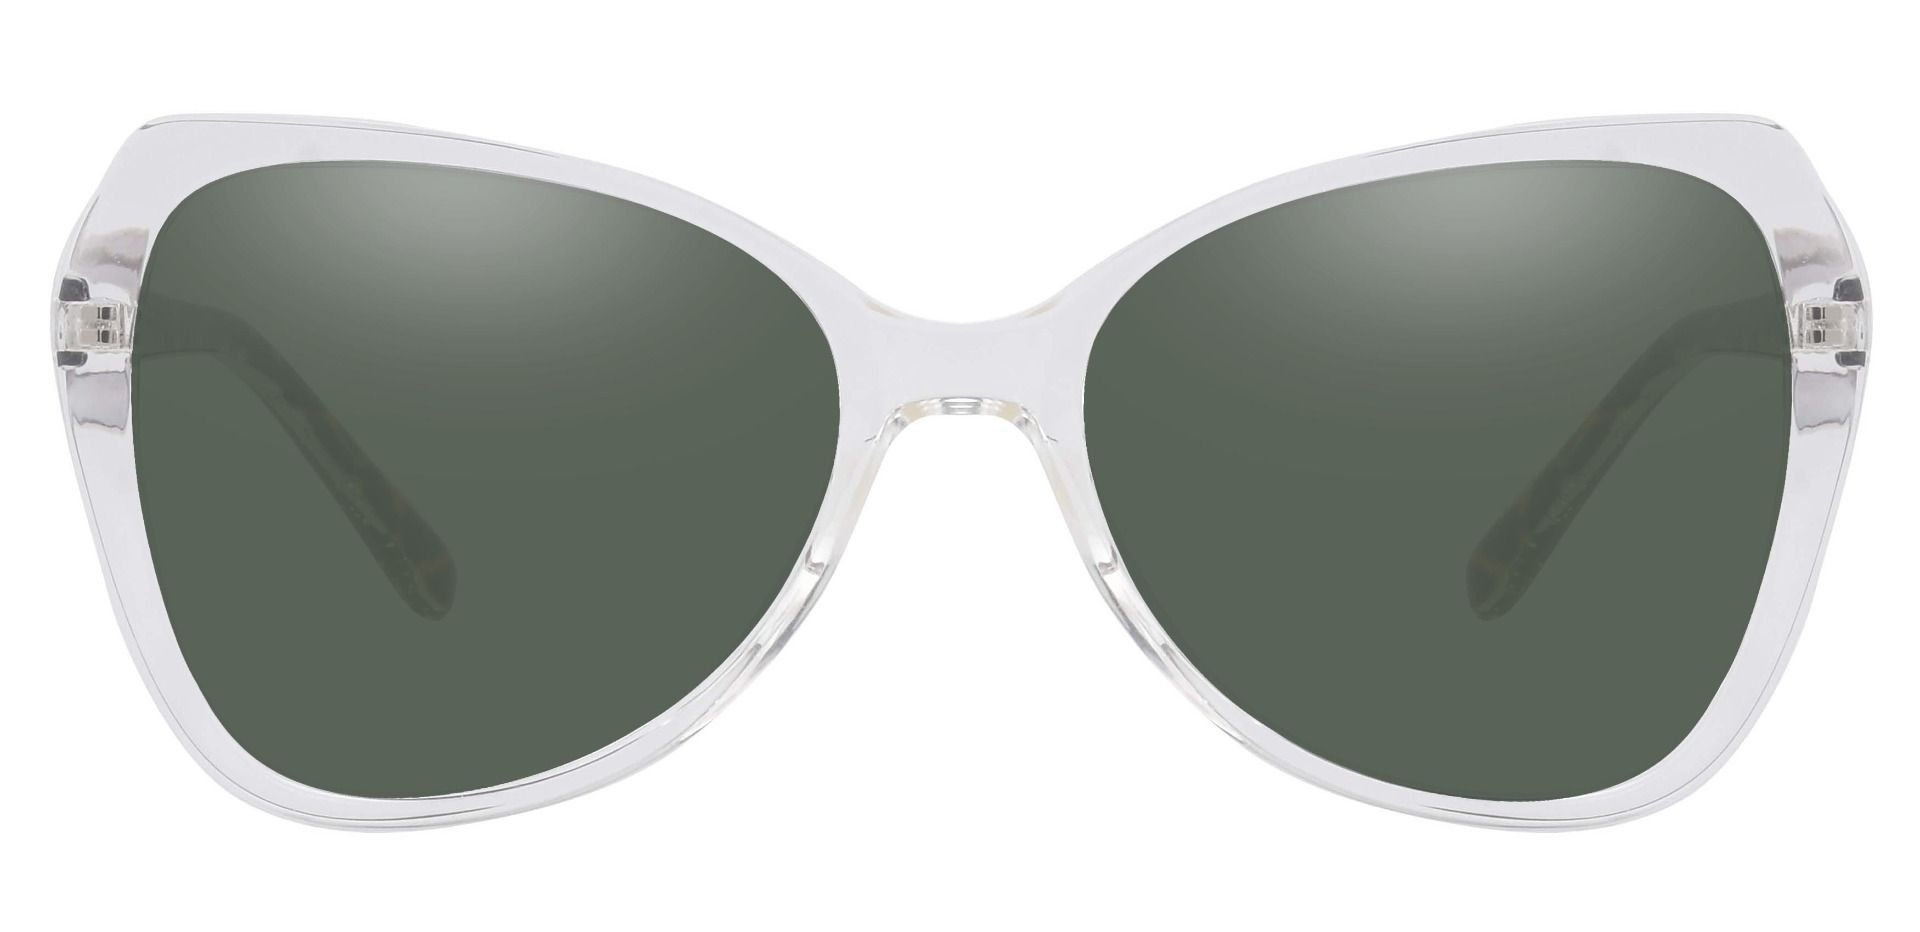 Kayla Geometric Reading Sunglasses - Clear Frame With Green Lenses